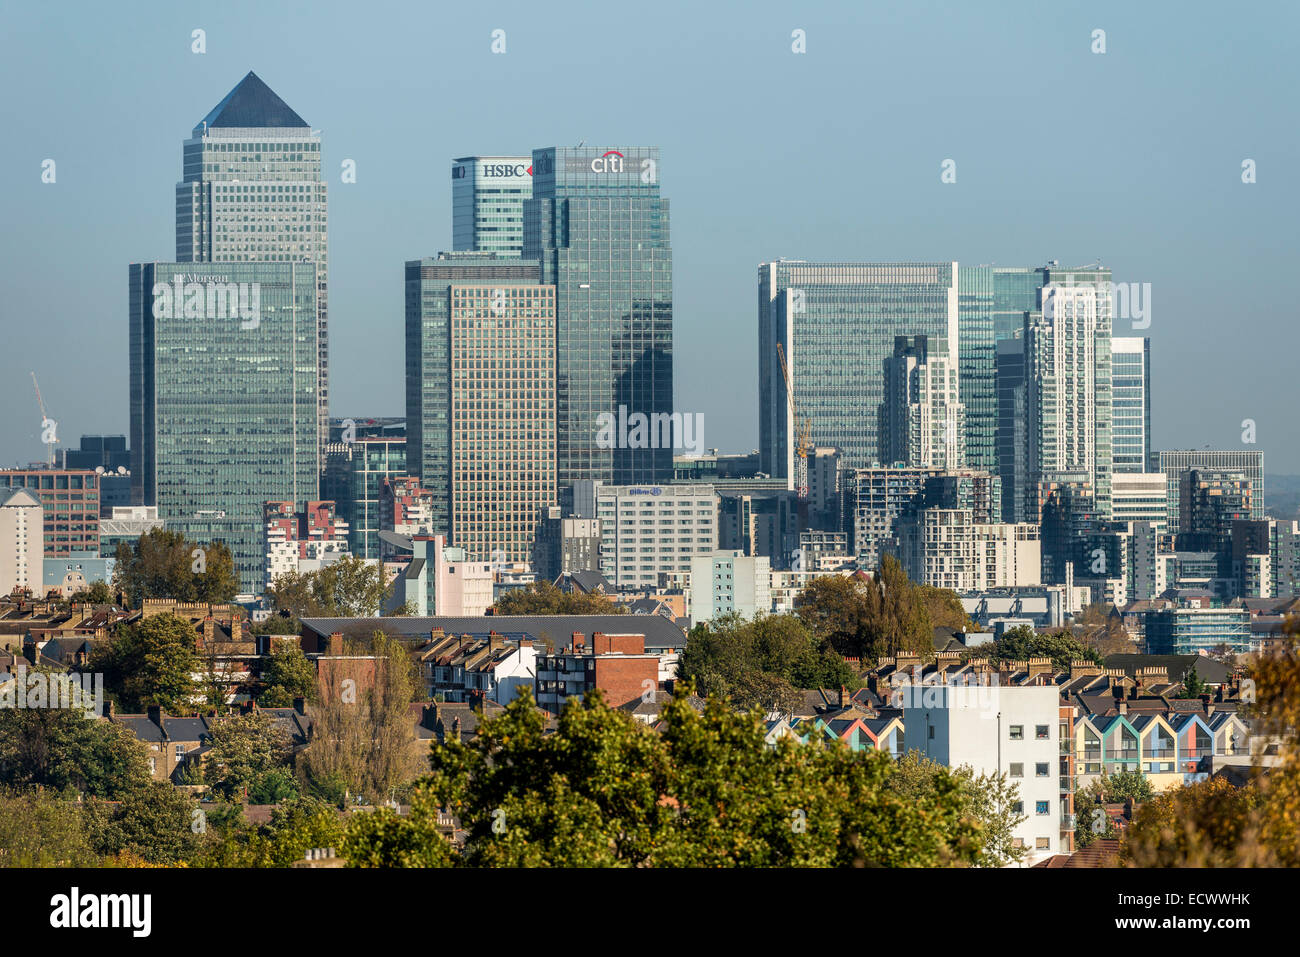 Views of Canary Wharf, the second financial district of London viewed across the rooftops of South London - Stock Image